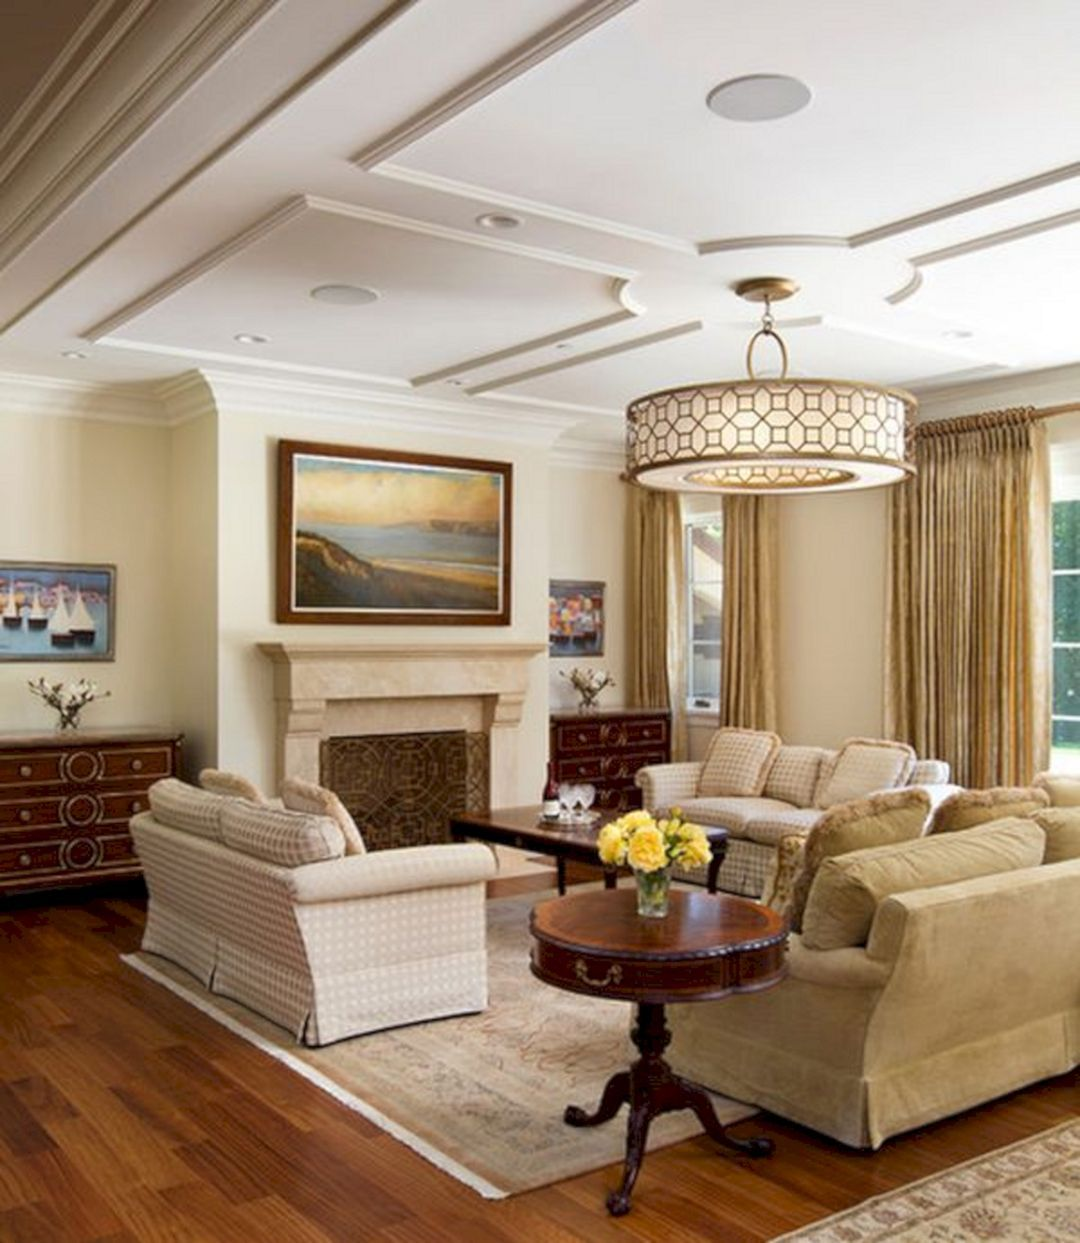 20+ Romantic Light Fixture For Beautiful Living Room Ideas images